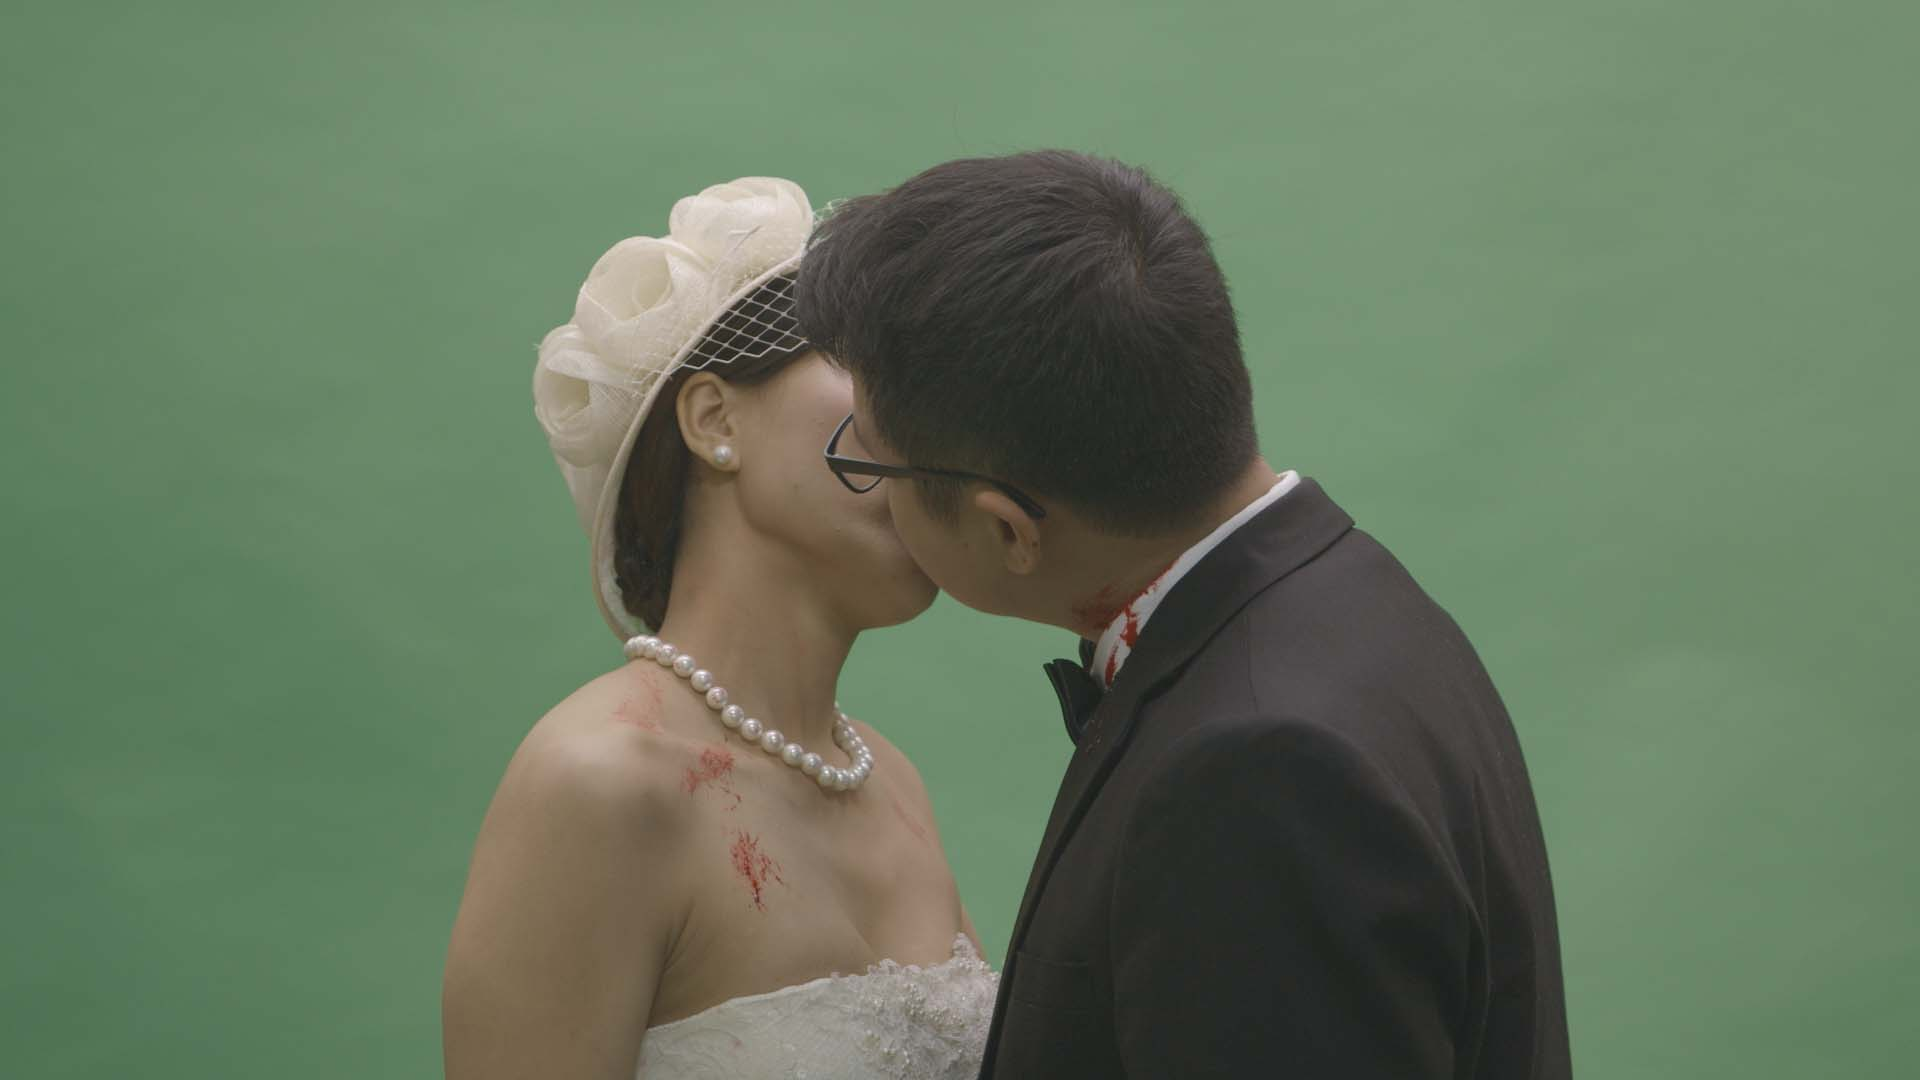 A bridge and groom kiss on green screen.